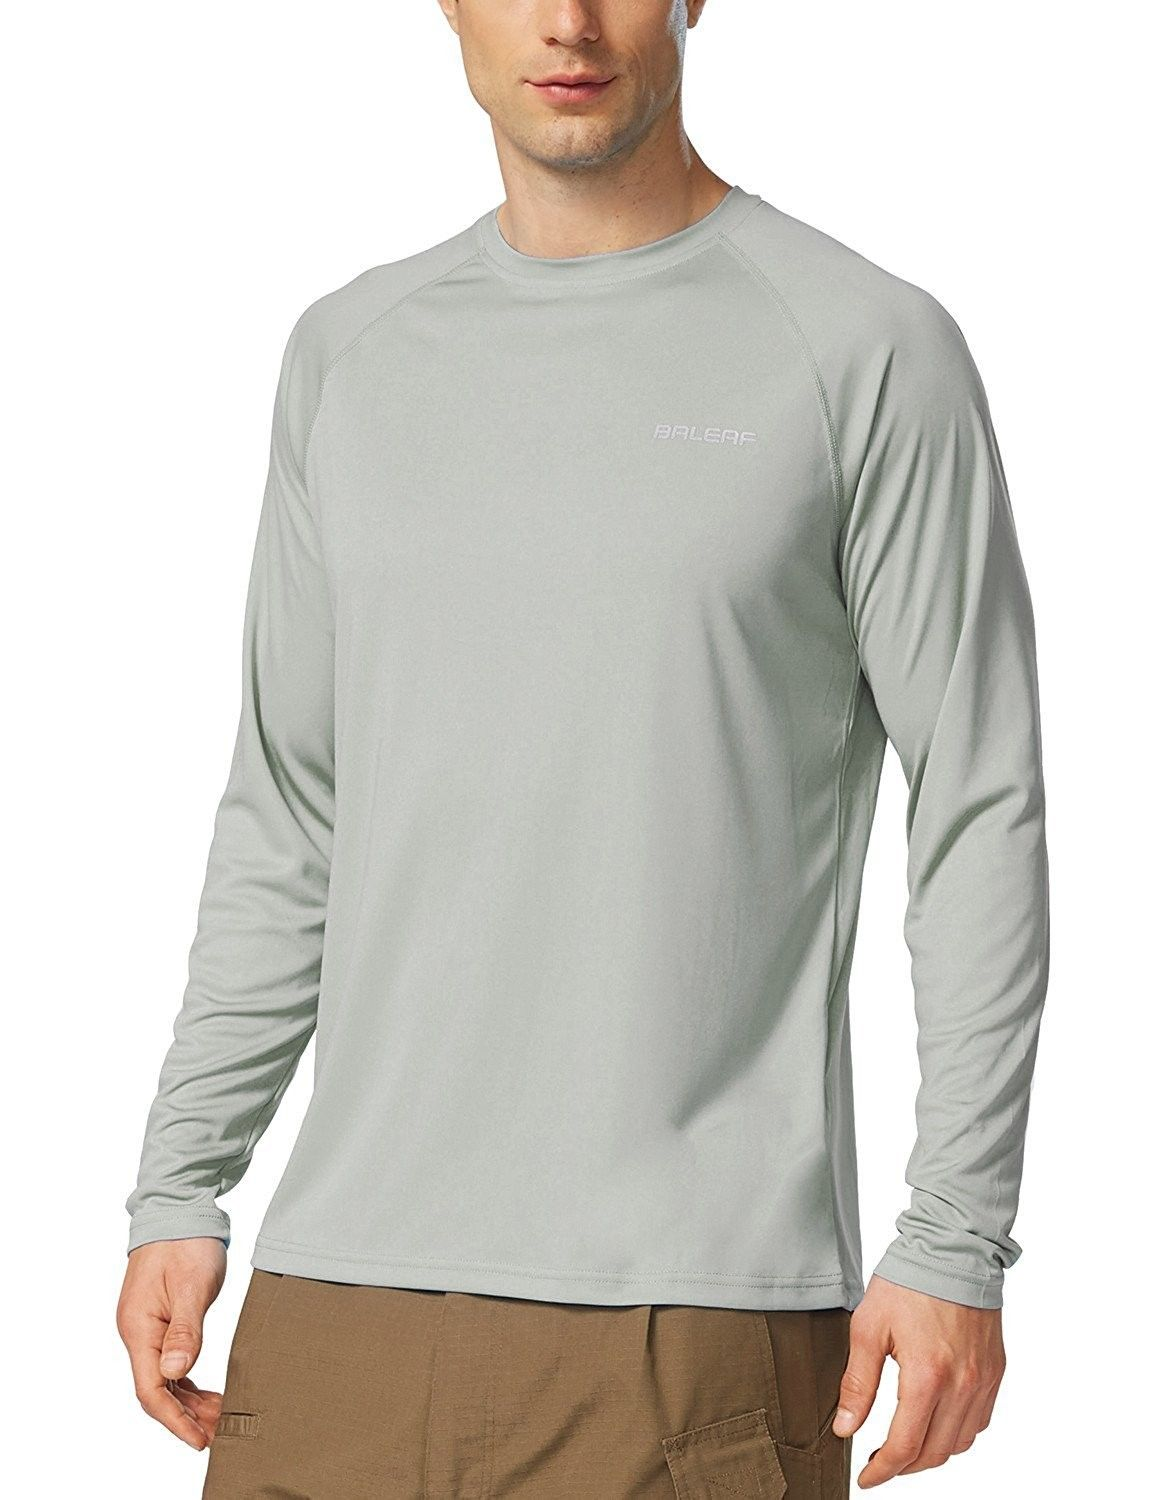 b2362ab84a78c Long Sleeve T Shirts With Uv Protection – EDGE Engineering and ...